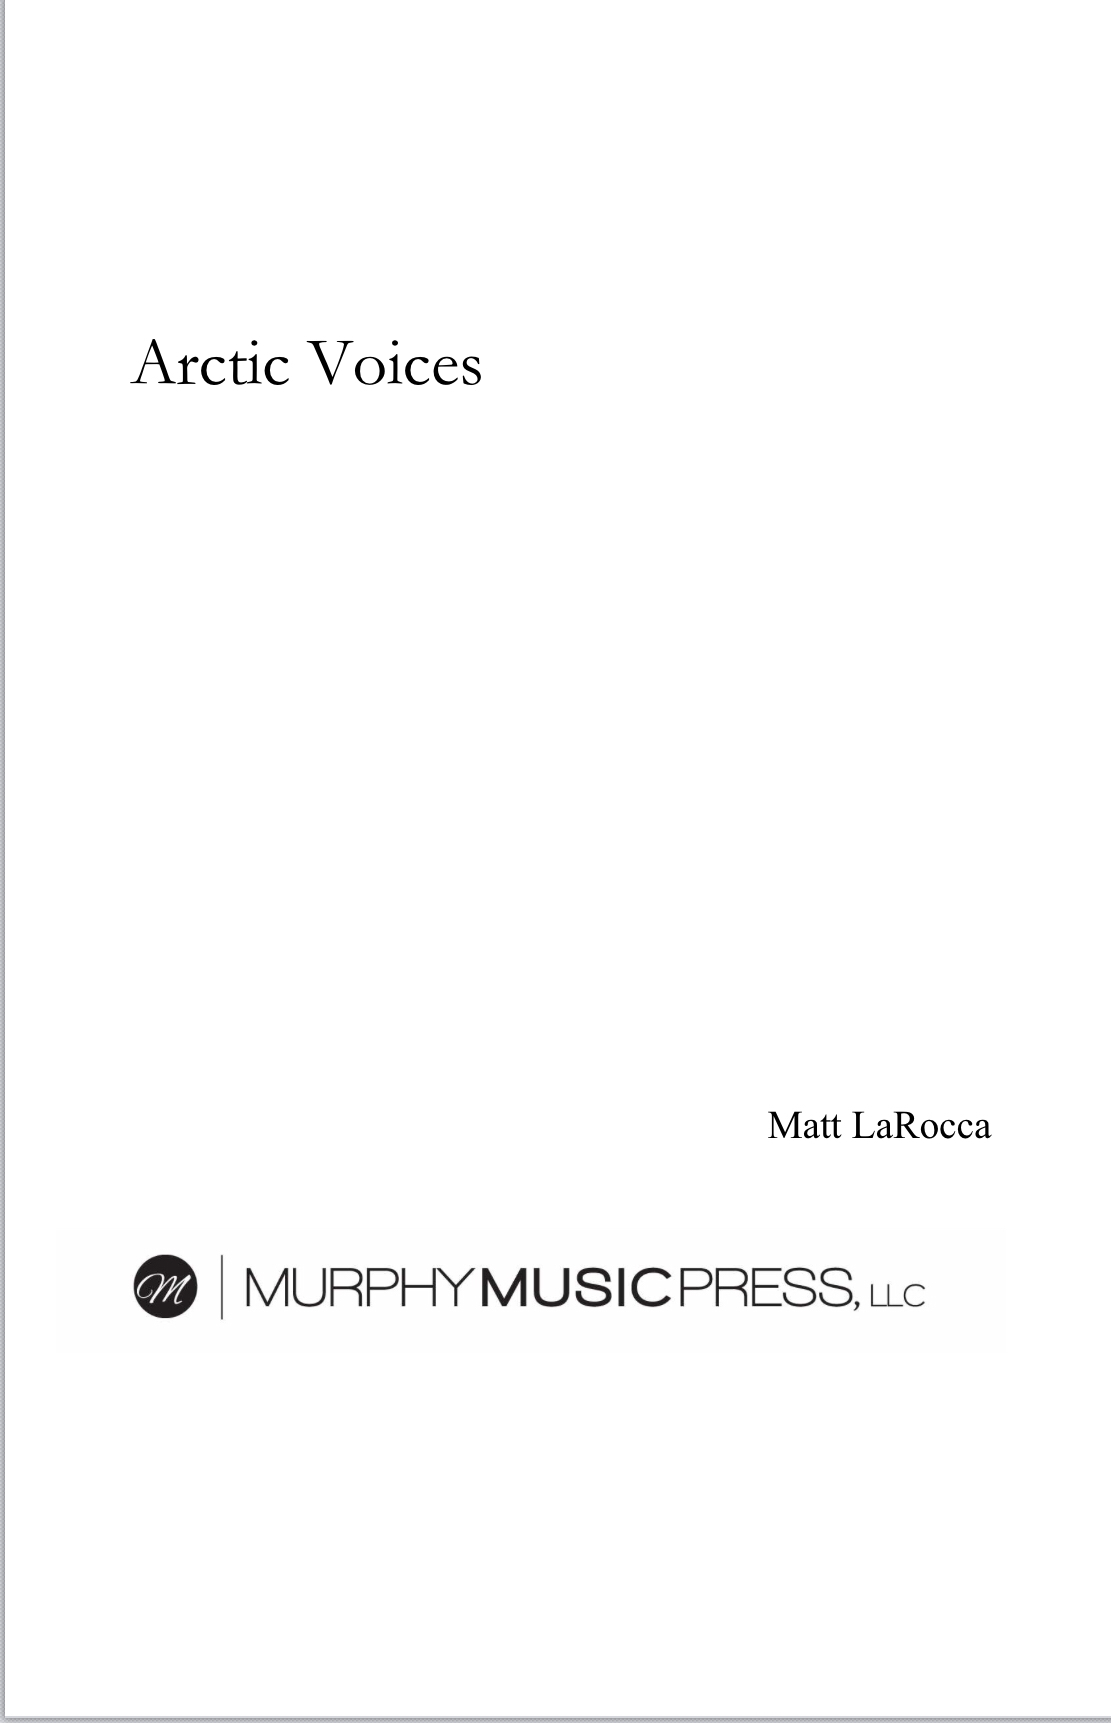 Arctic Voices by Matt LaRocca